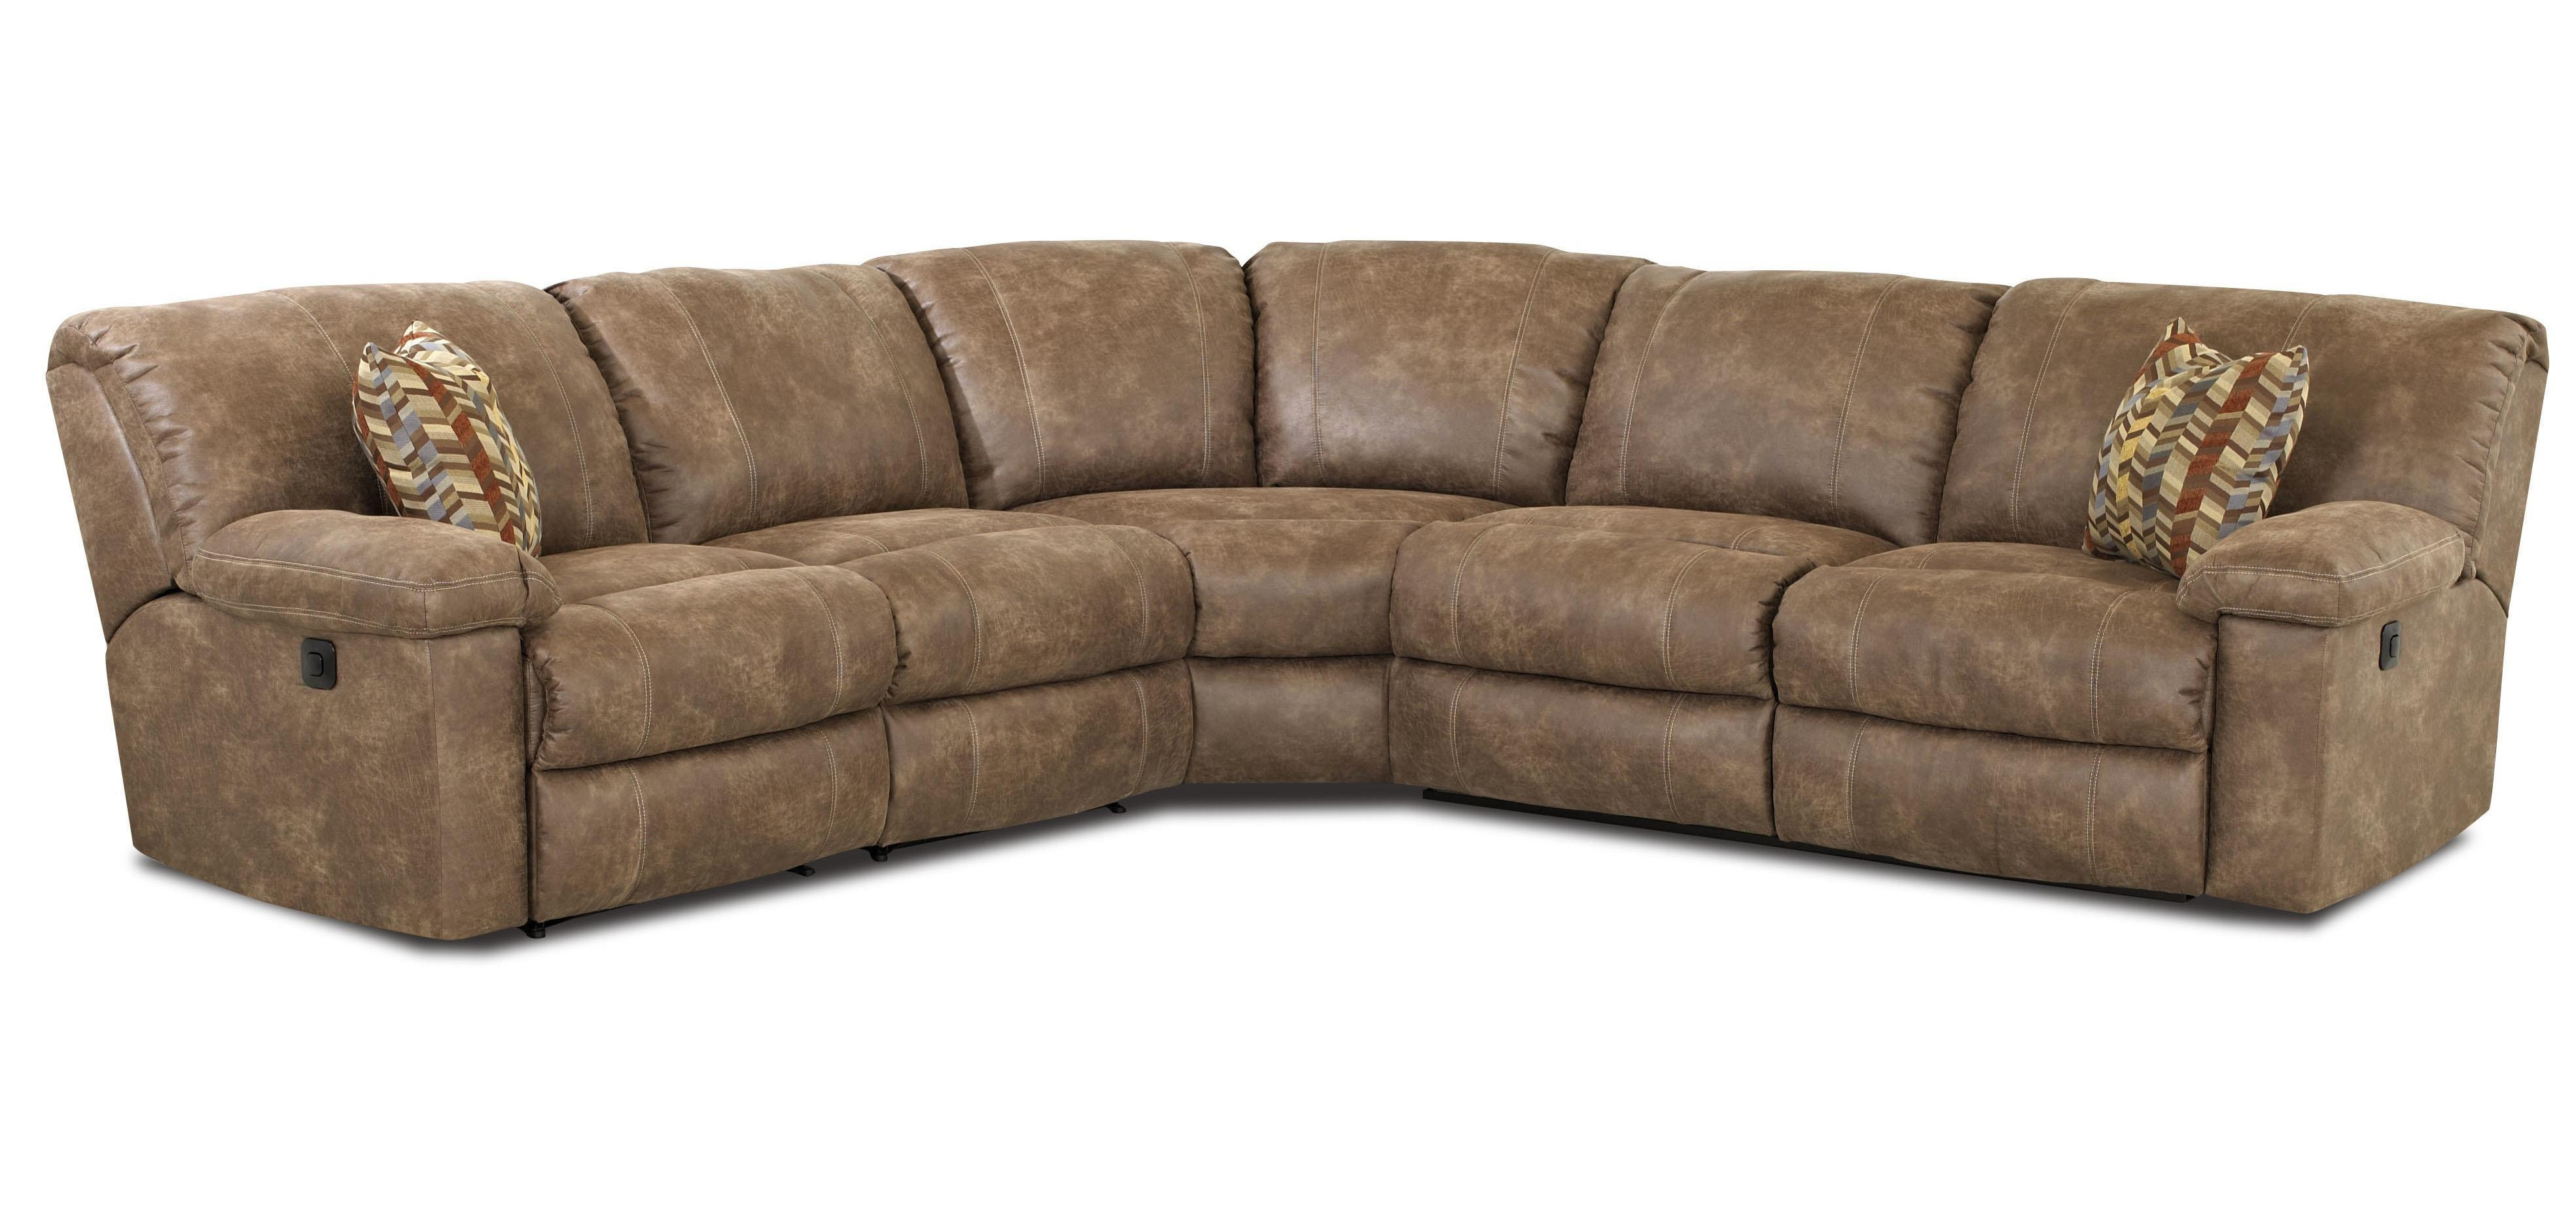 Sofas Center : Large Sectional Sofa With Chaise Costa Mesa Seven With Regard To Large Leather Sectional (View 18 of 20)